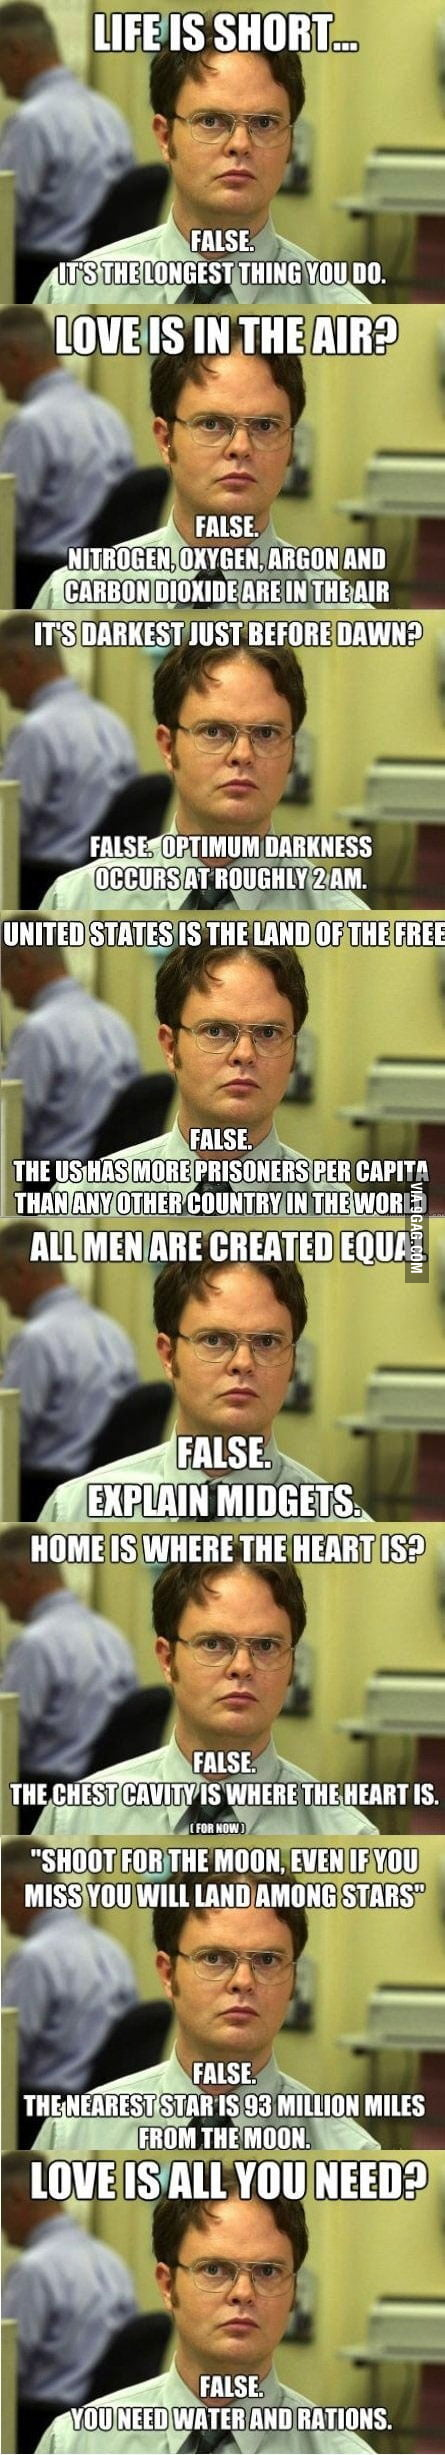 Best of nerd corrections (aka Dwight Schrute)